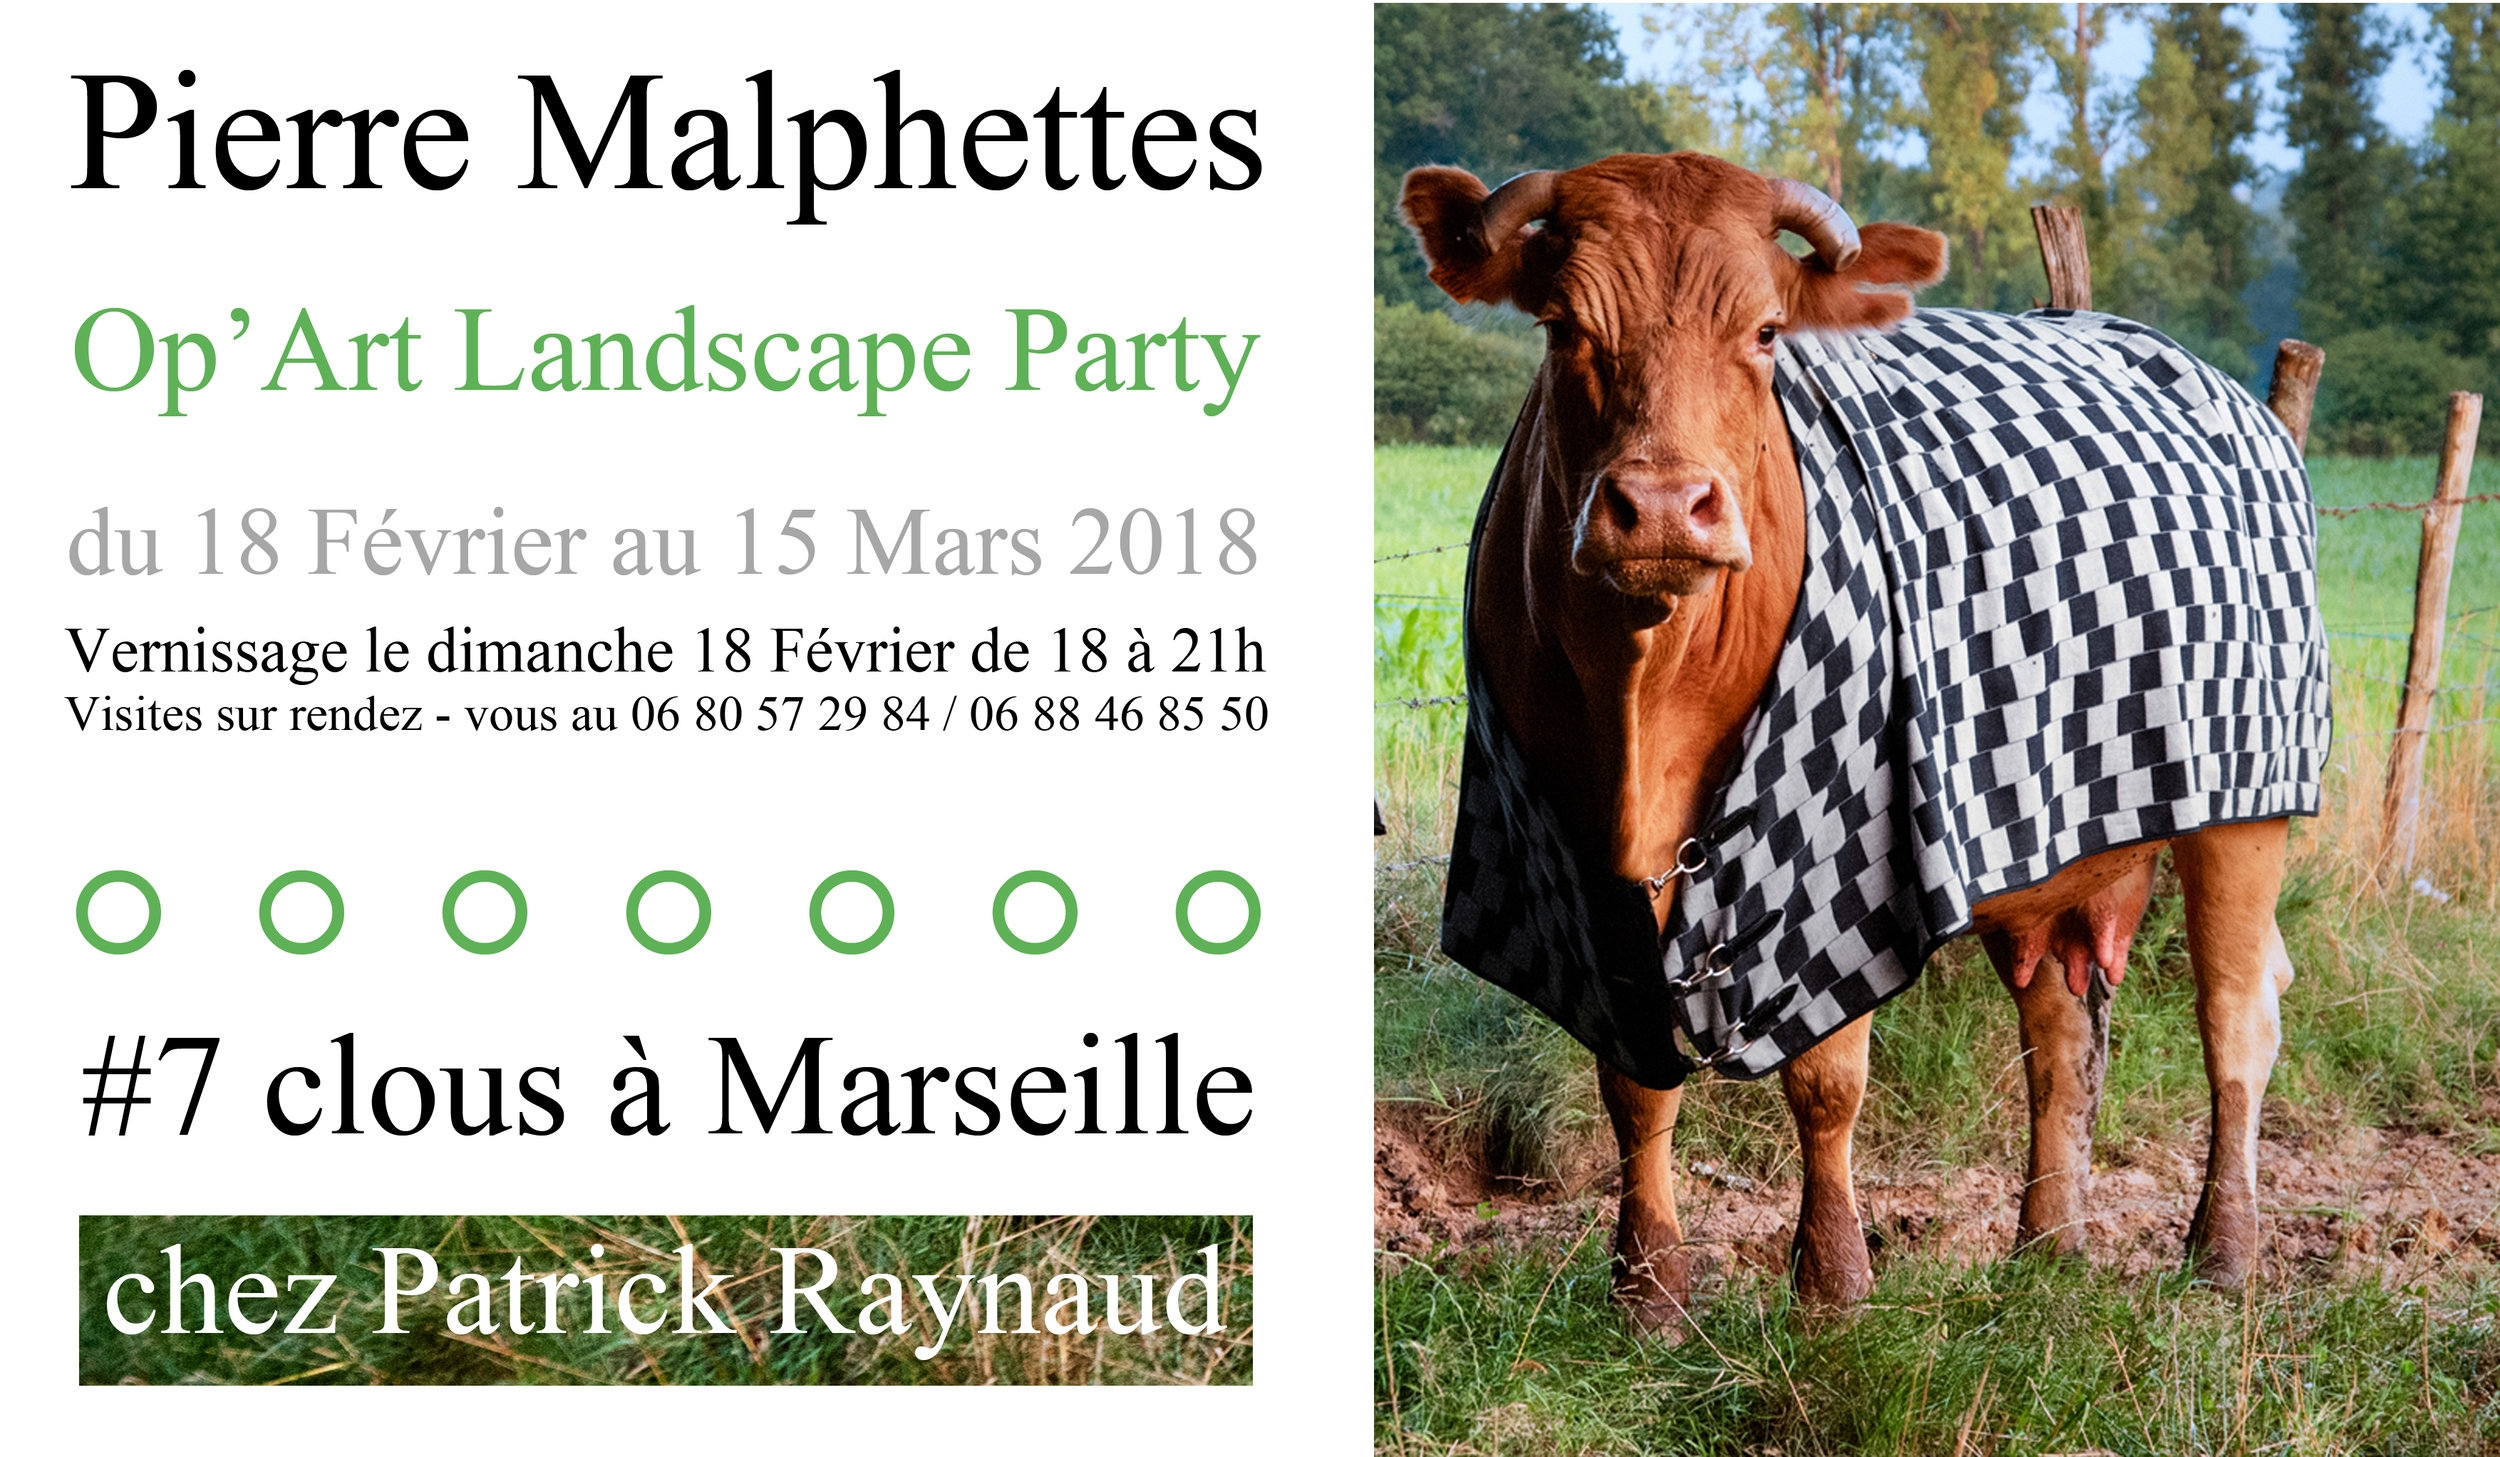 Invitation Malphettes.jpg